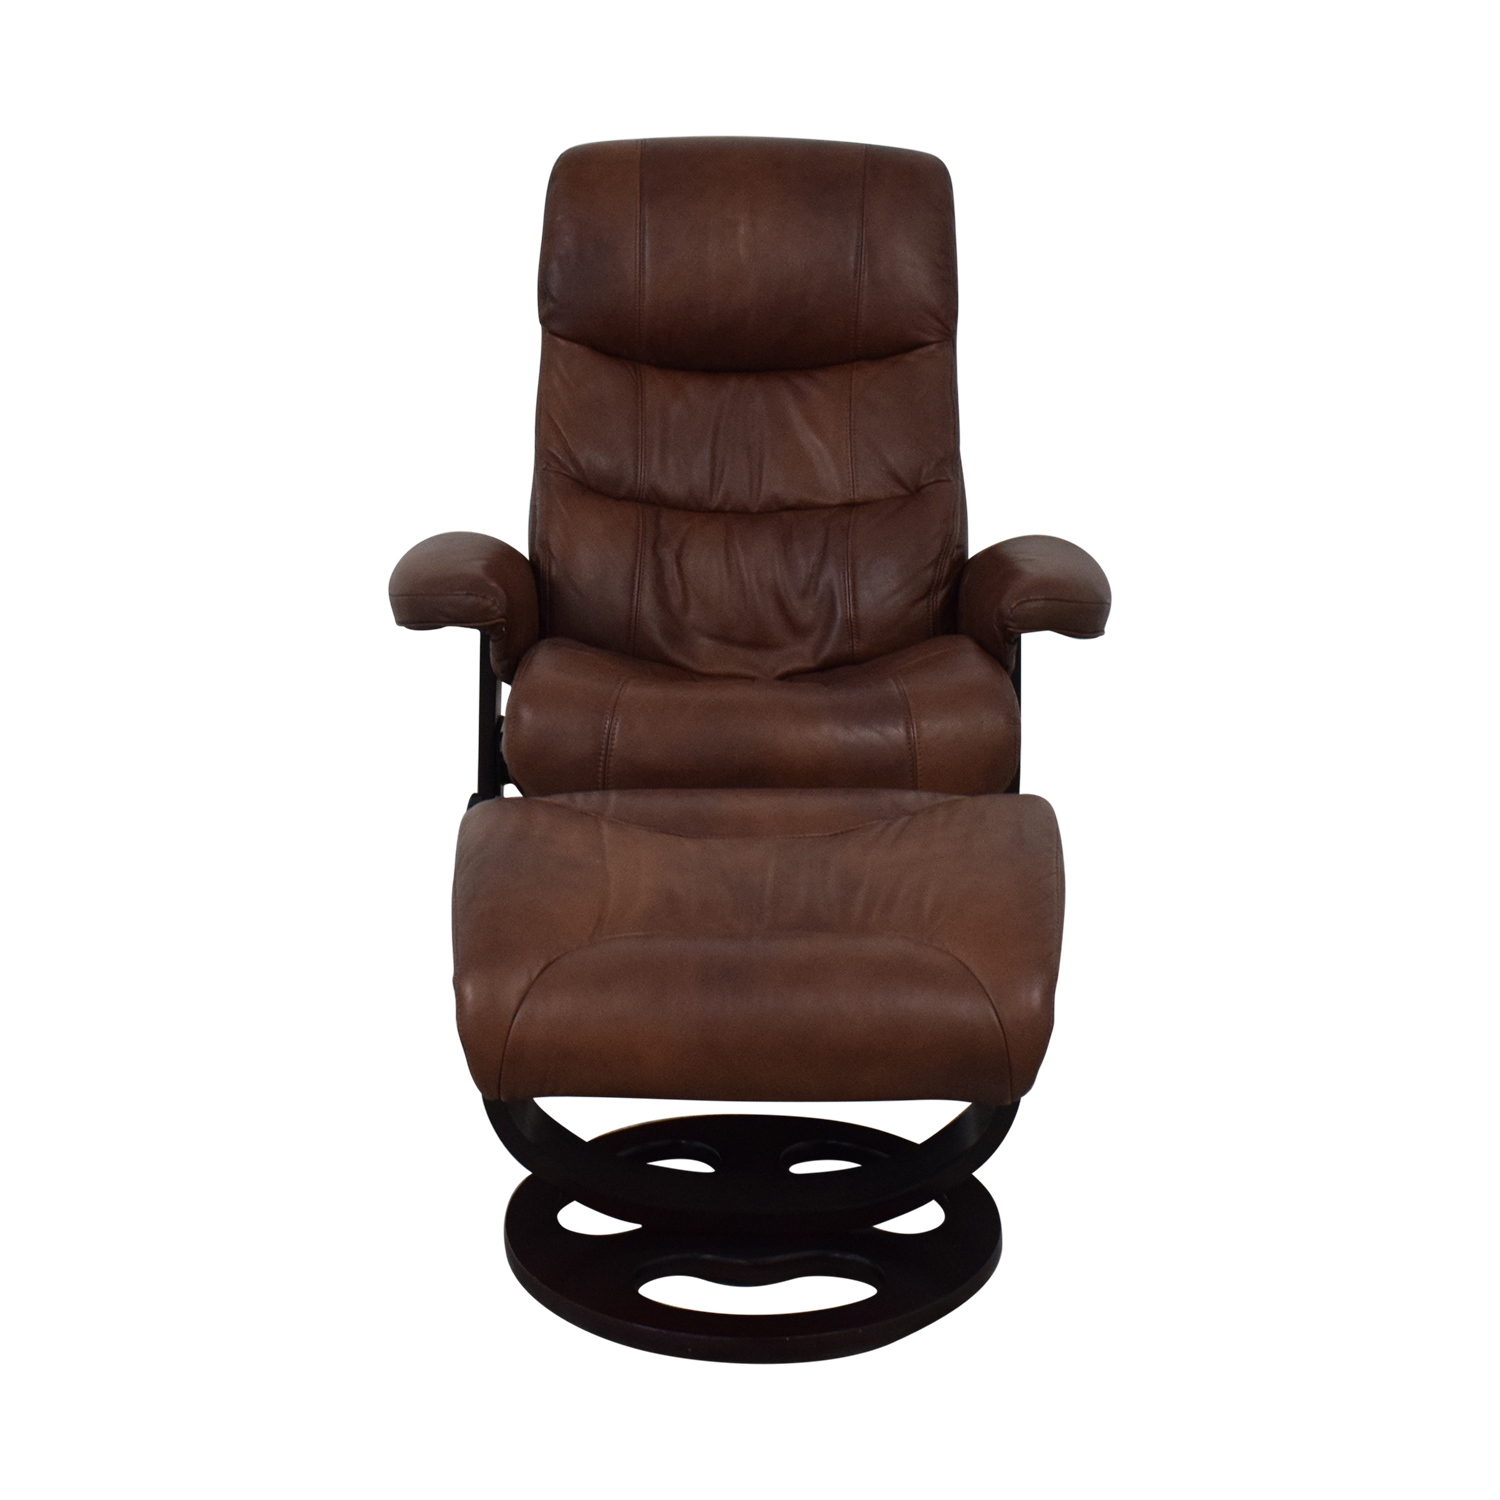 80 Off Lane Furniture Lane Furniture Recliner And Ottoman Chairs